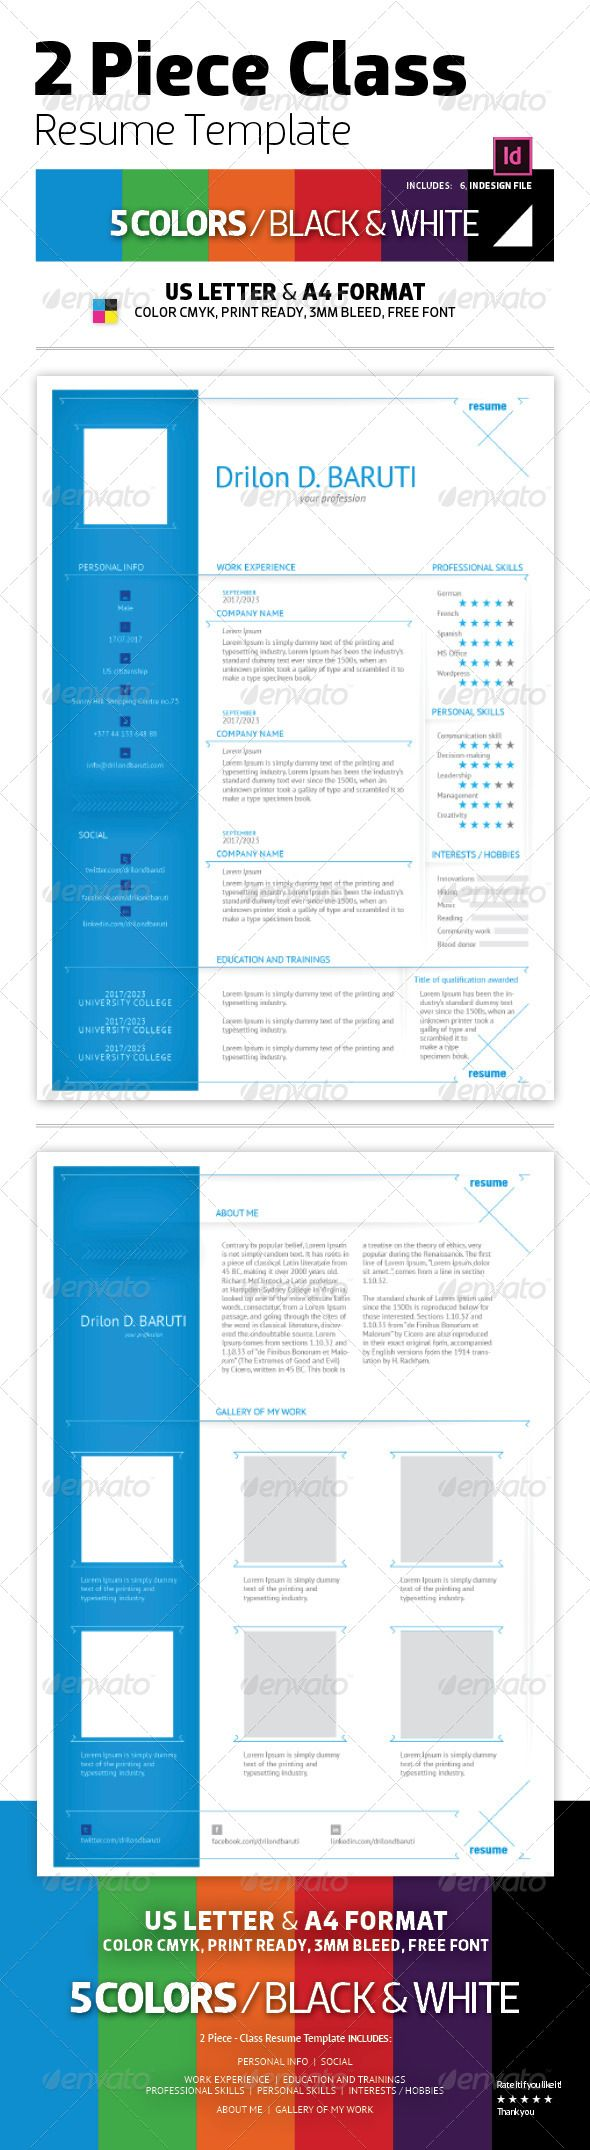 Best Simple Resume Template Images On   Resume